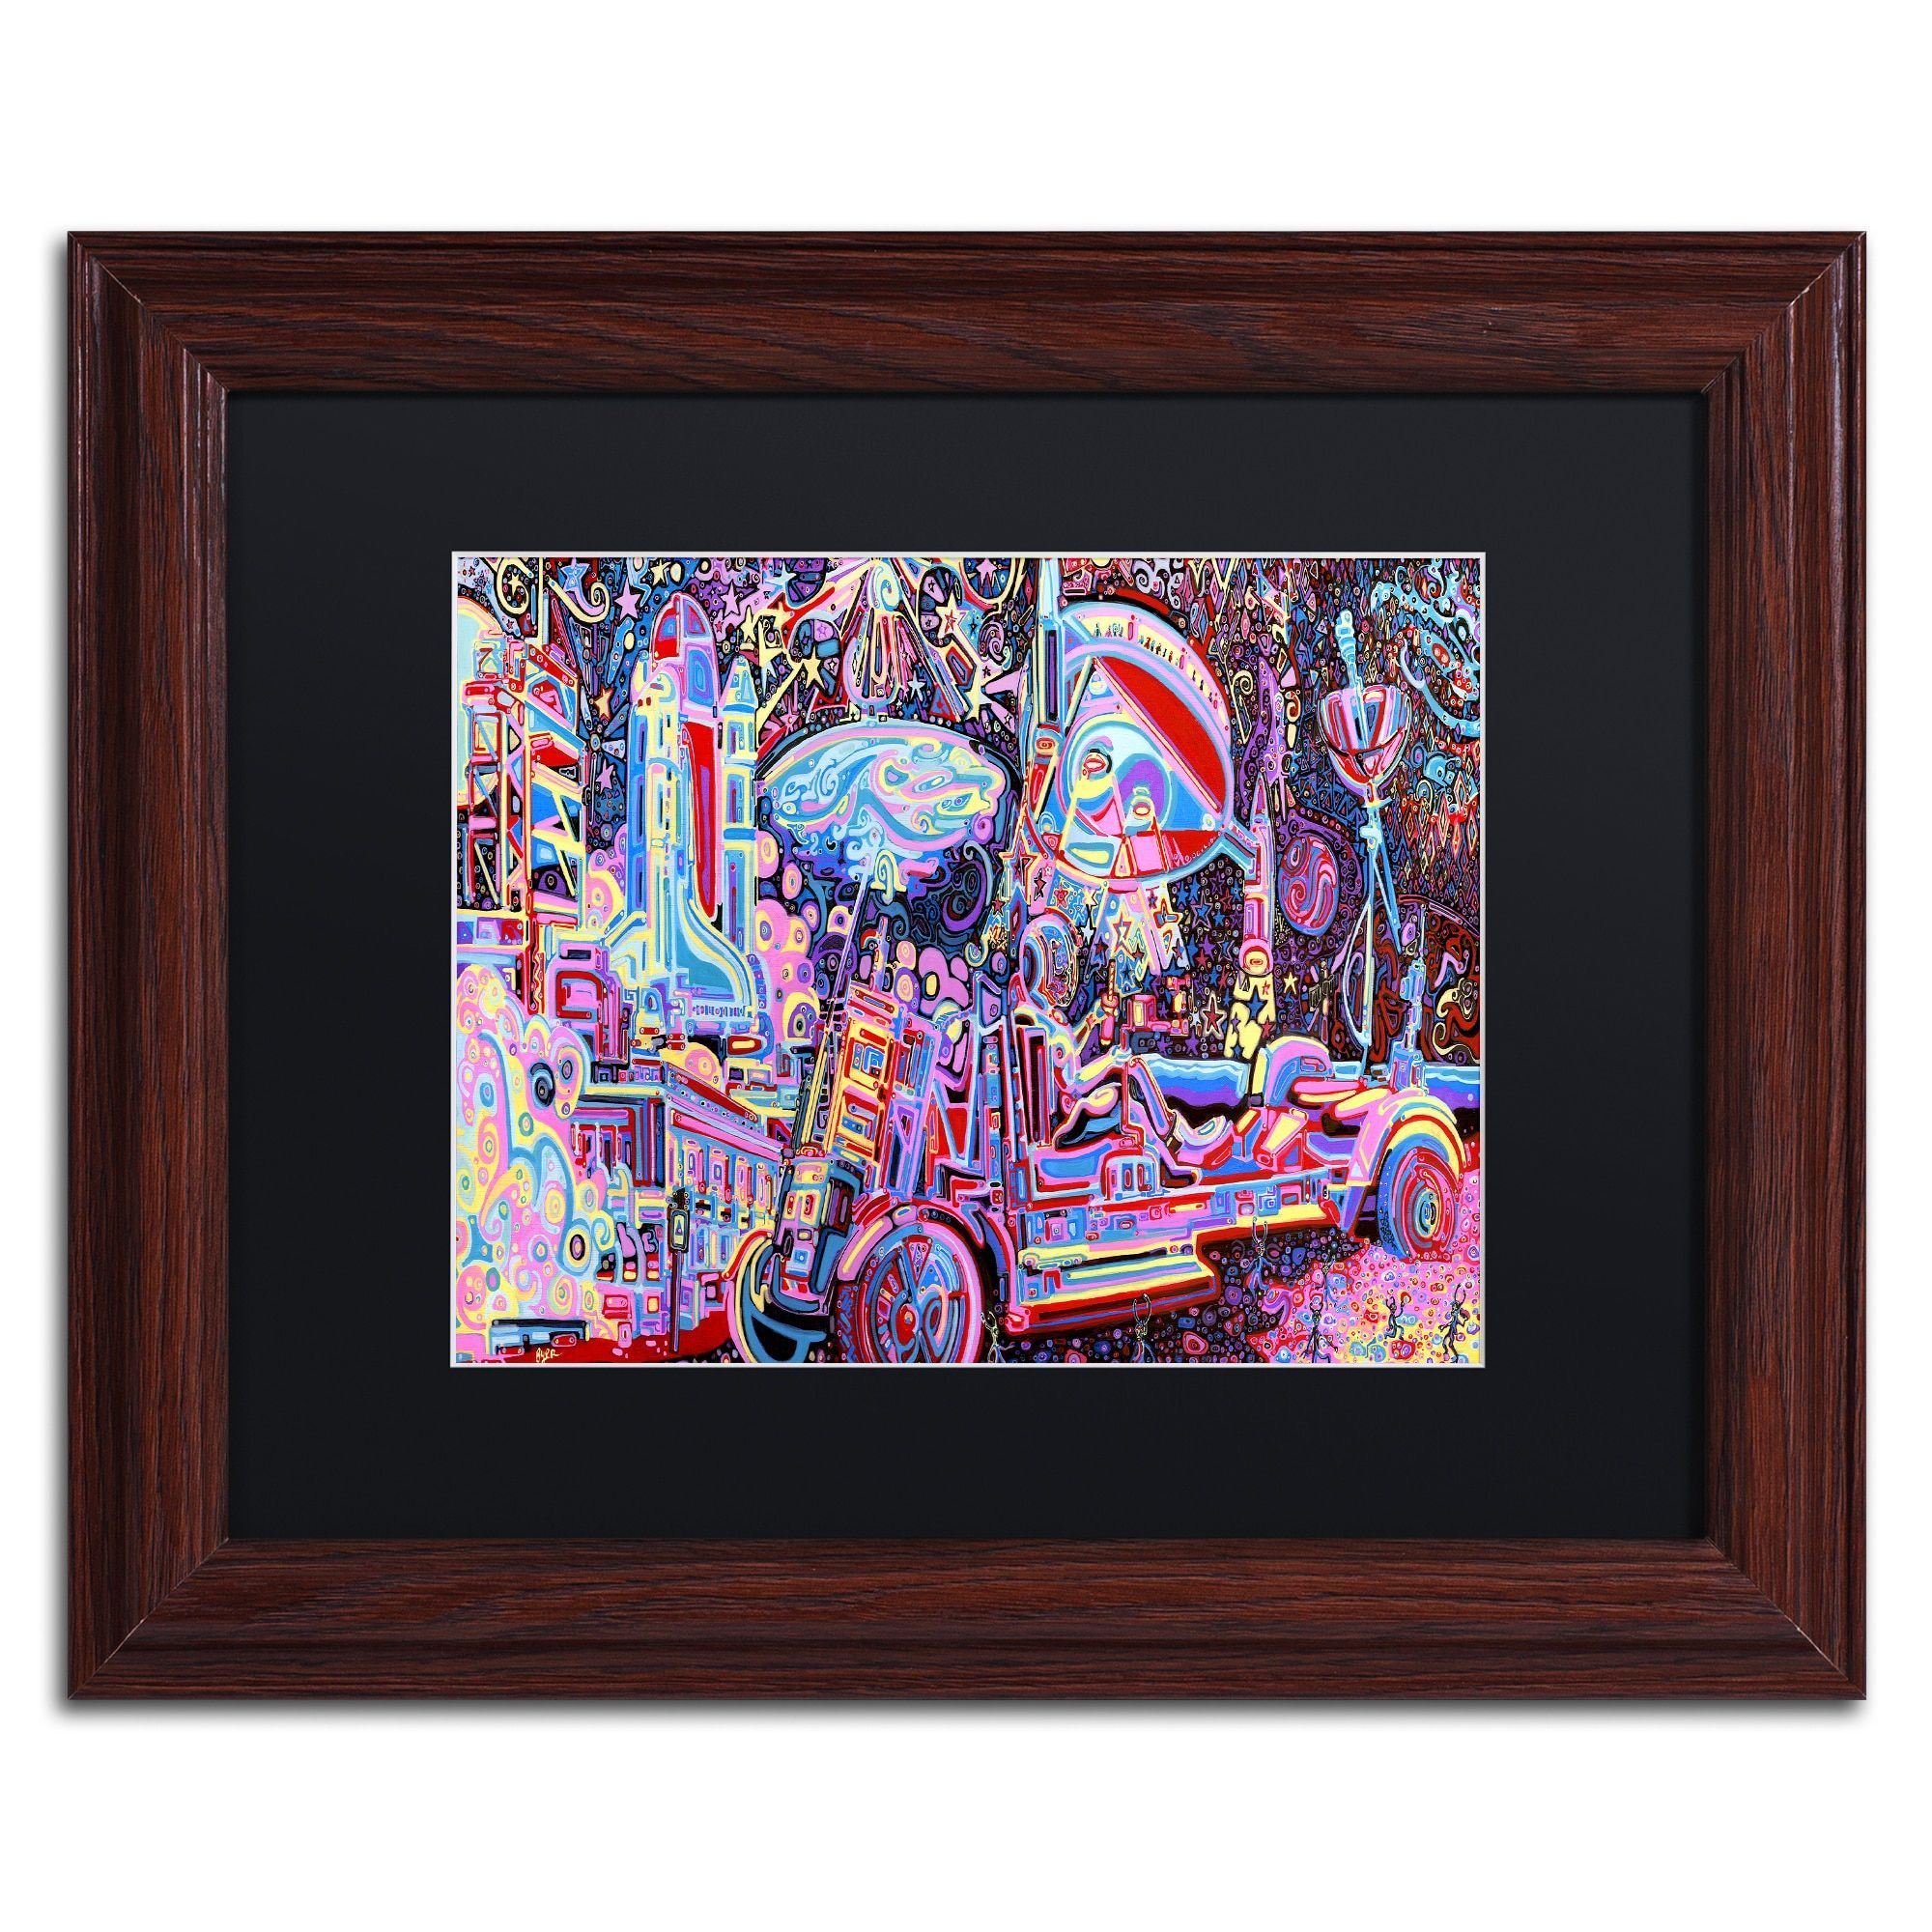 Josh Byer \'Moon Buggy\' Matted Framed Art | Products | Pinterest ...